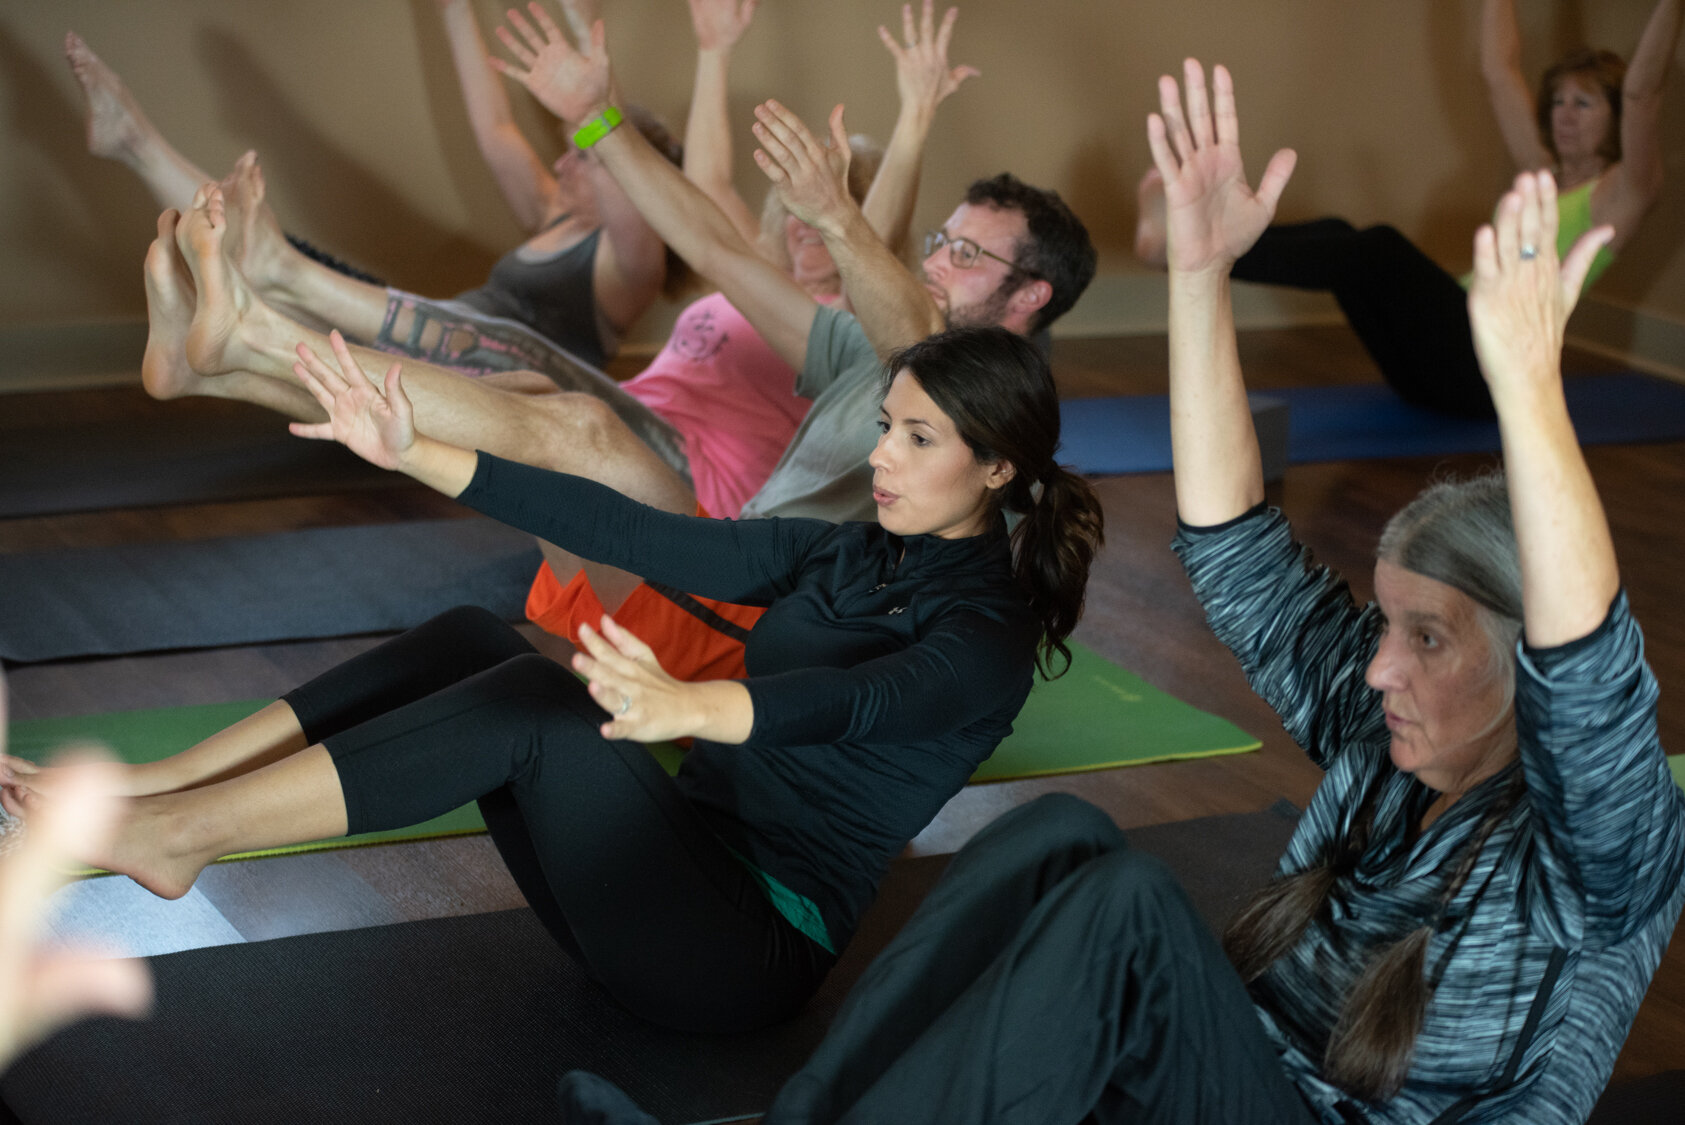 Core Clinic - This is a core-focused yoga class for all levels. Includes some flow sequences as well as targeted core exercises designed to build strength and stability.A strong core helps in all areas of the physical yoga practice, from balancing to arm balances or backbends, or just standing a little taller in mountain pose.